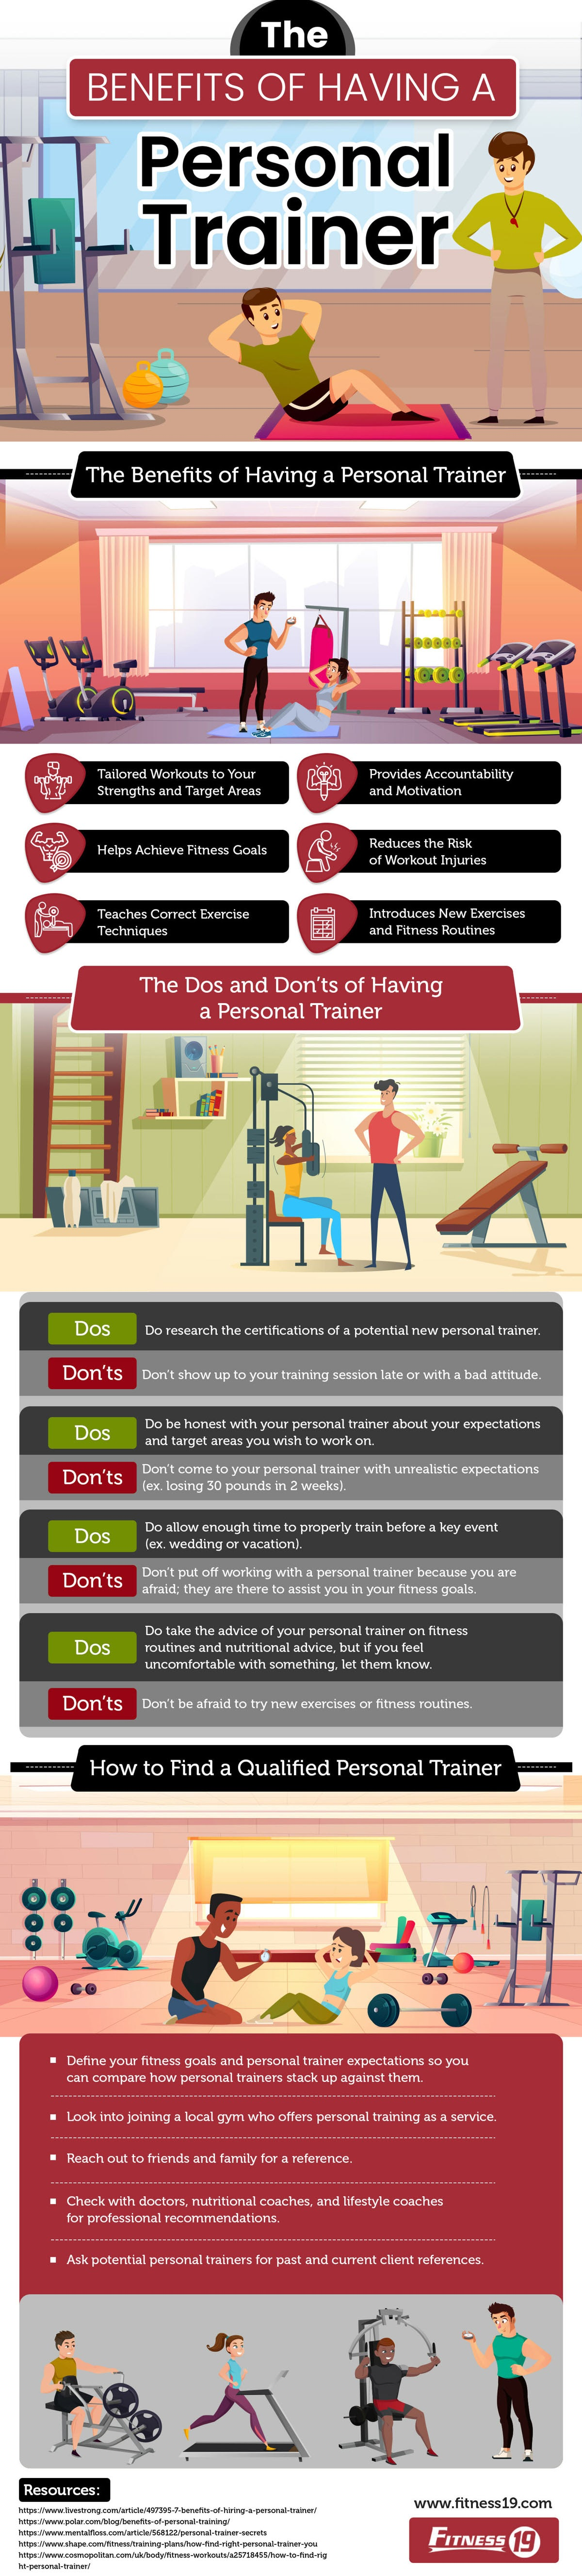 The Benefits of Having a Personal Trainer #infographic